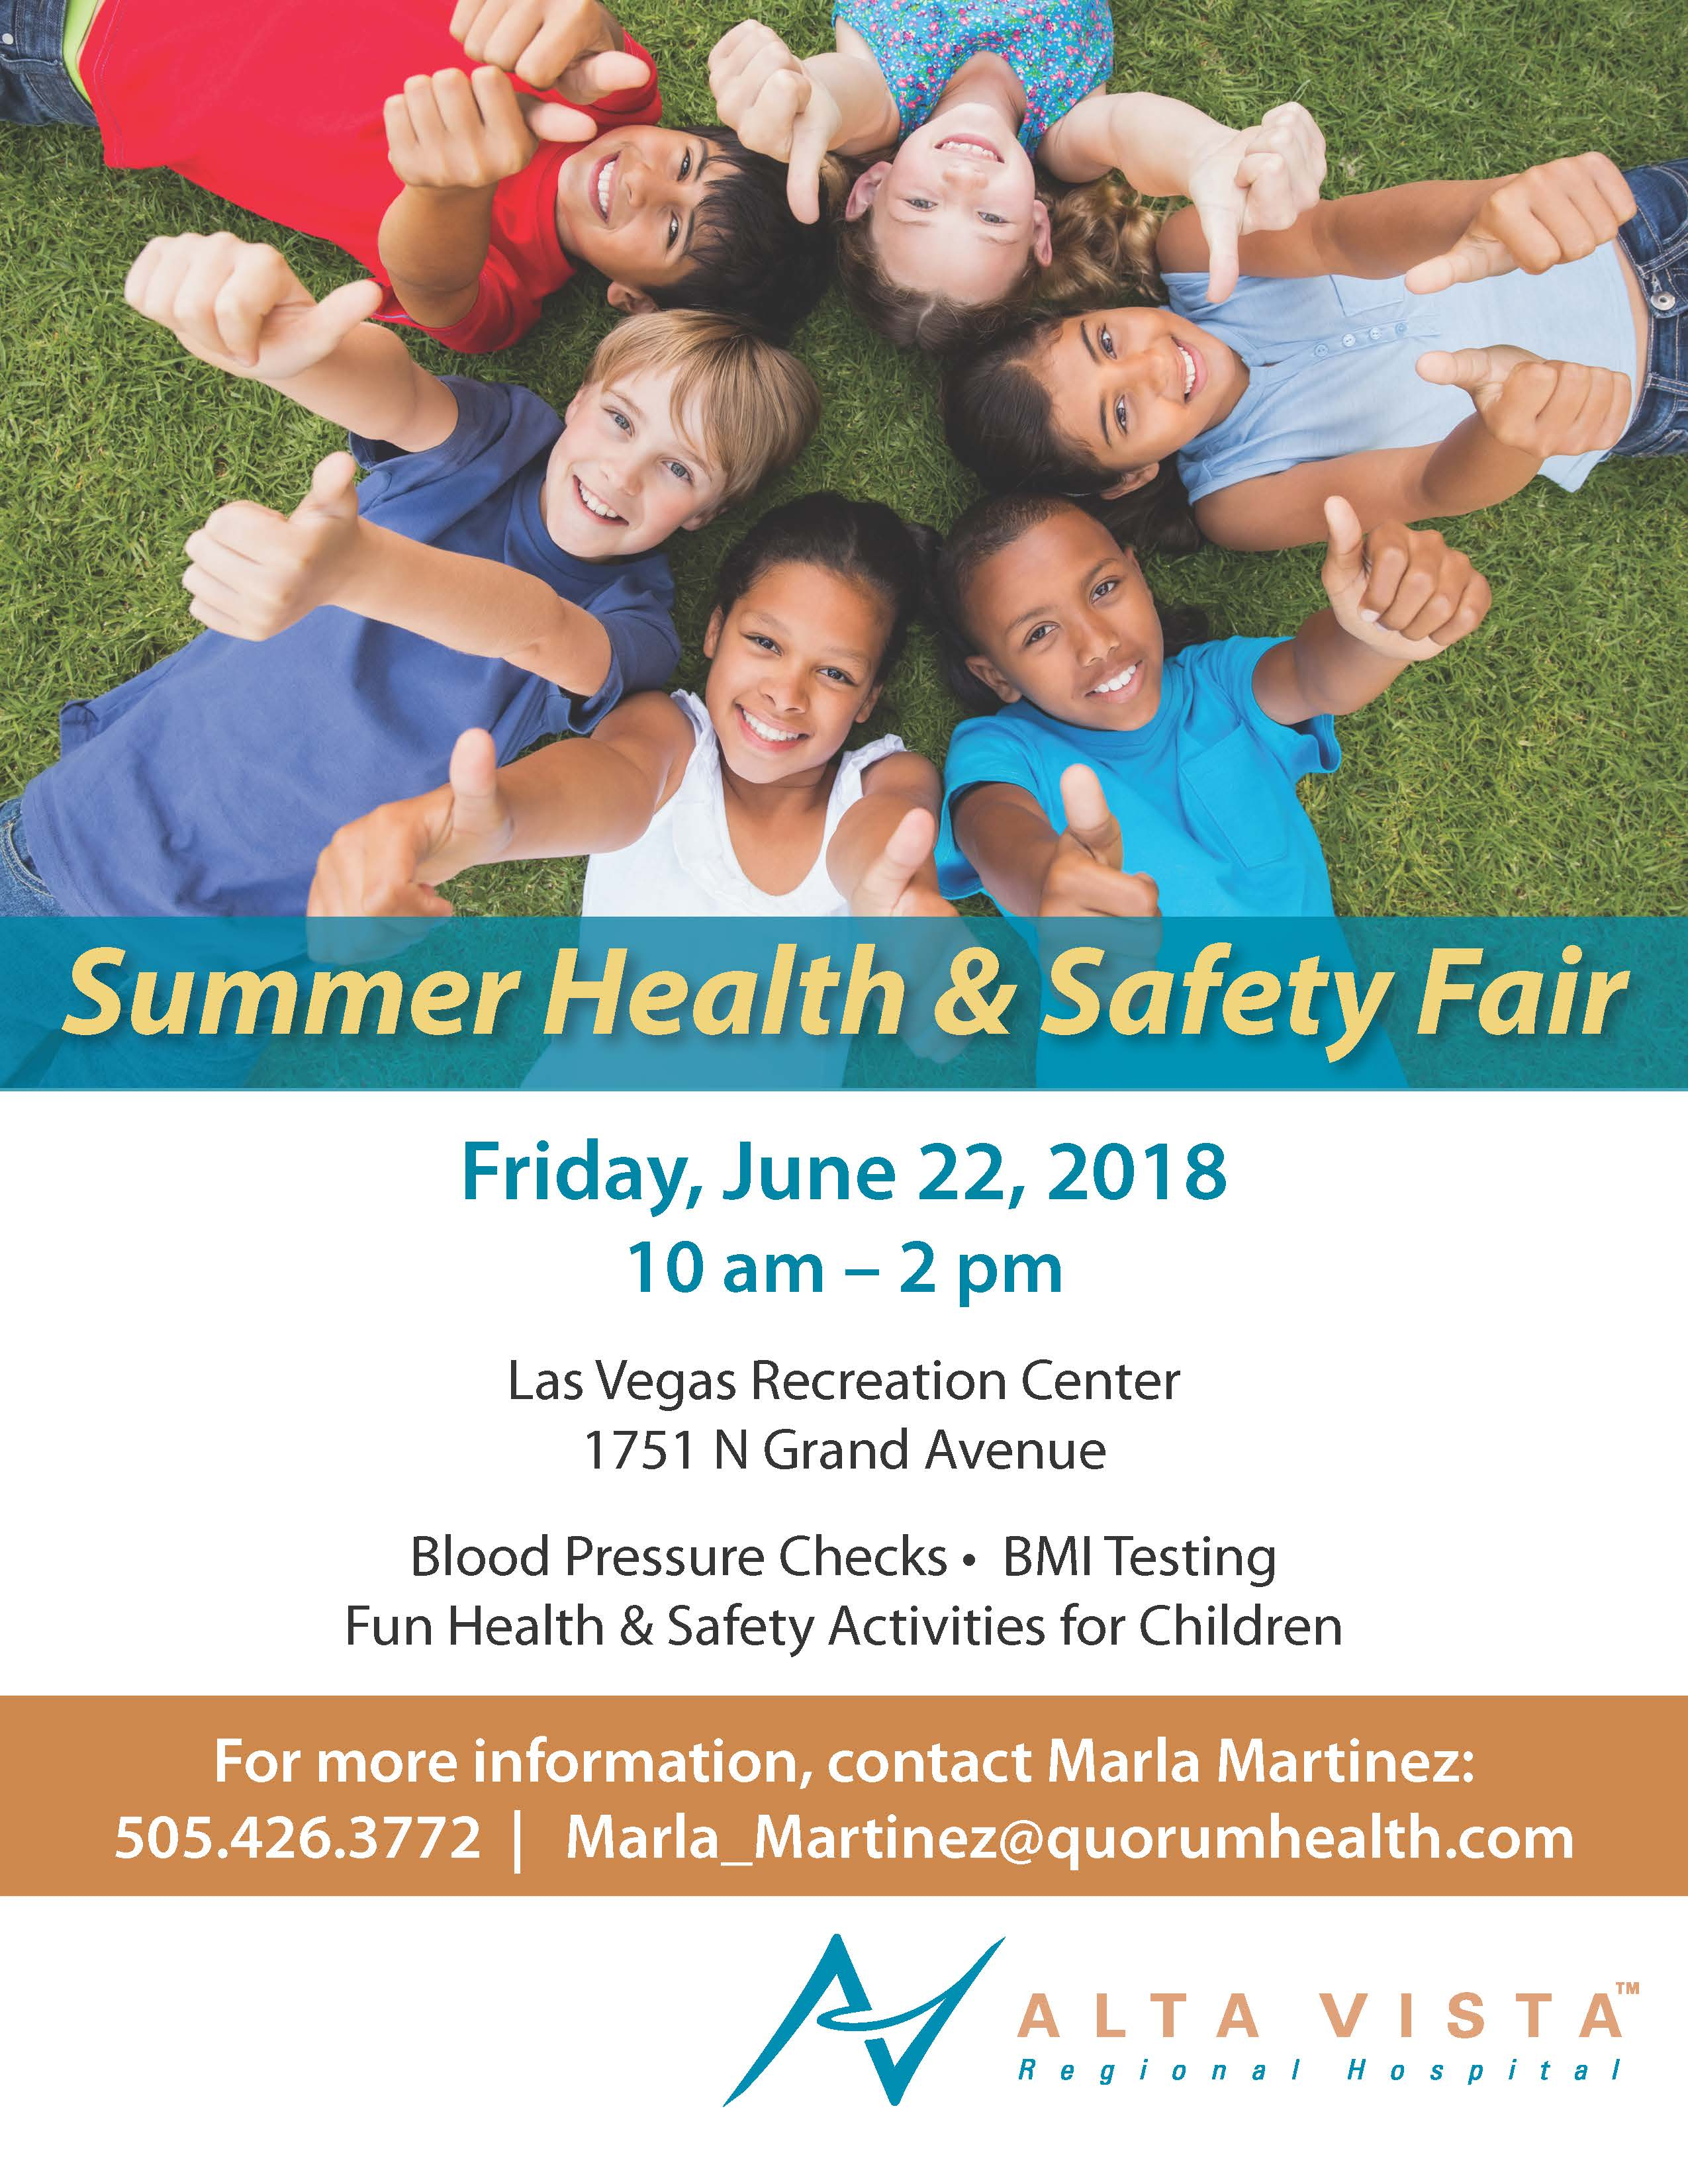 Summer Health & Safety Fair